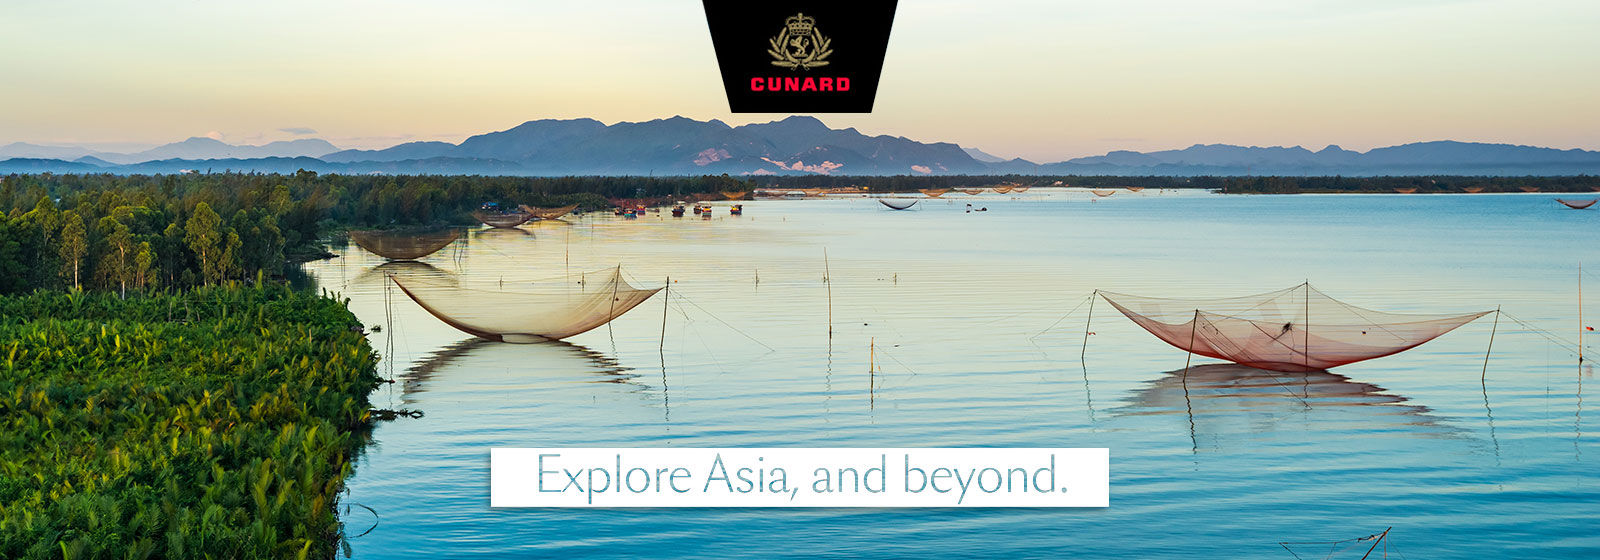 Cunard- Explore asia and beyond